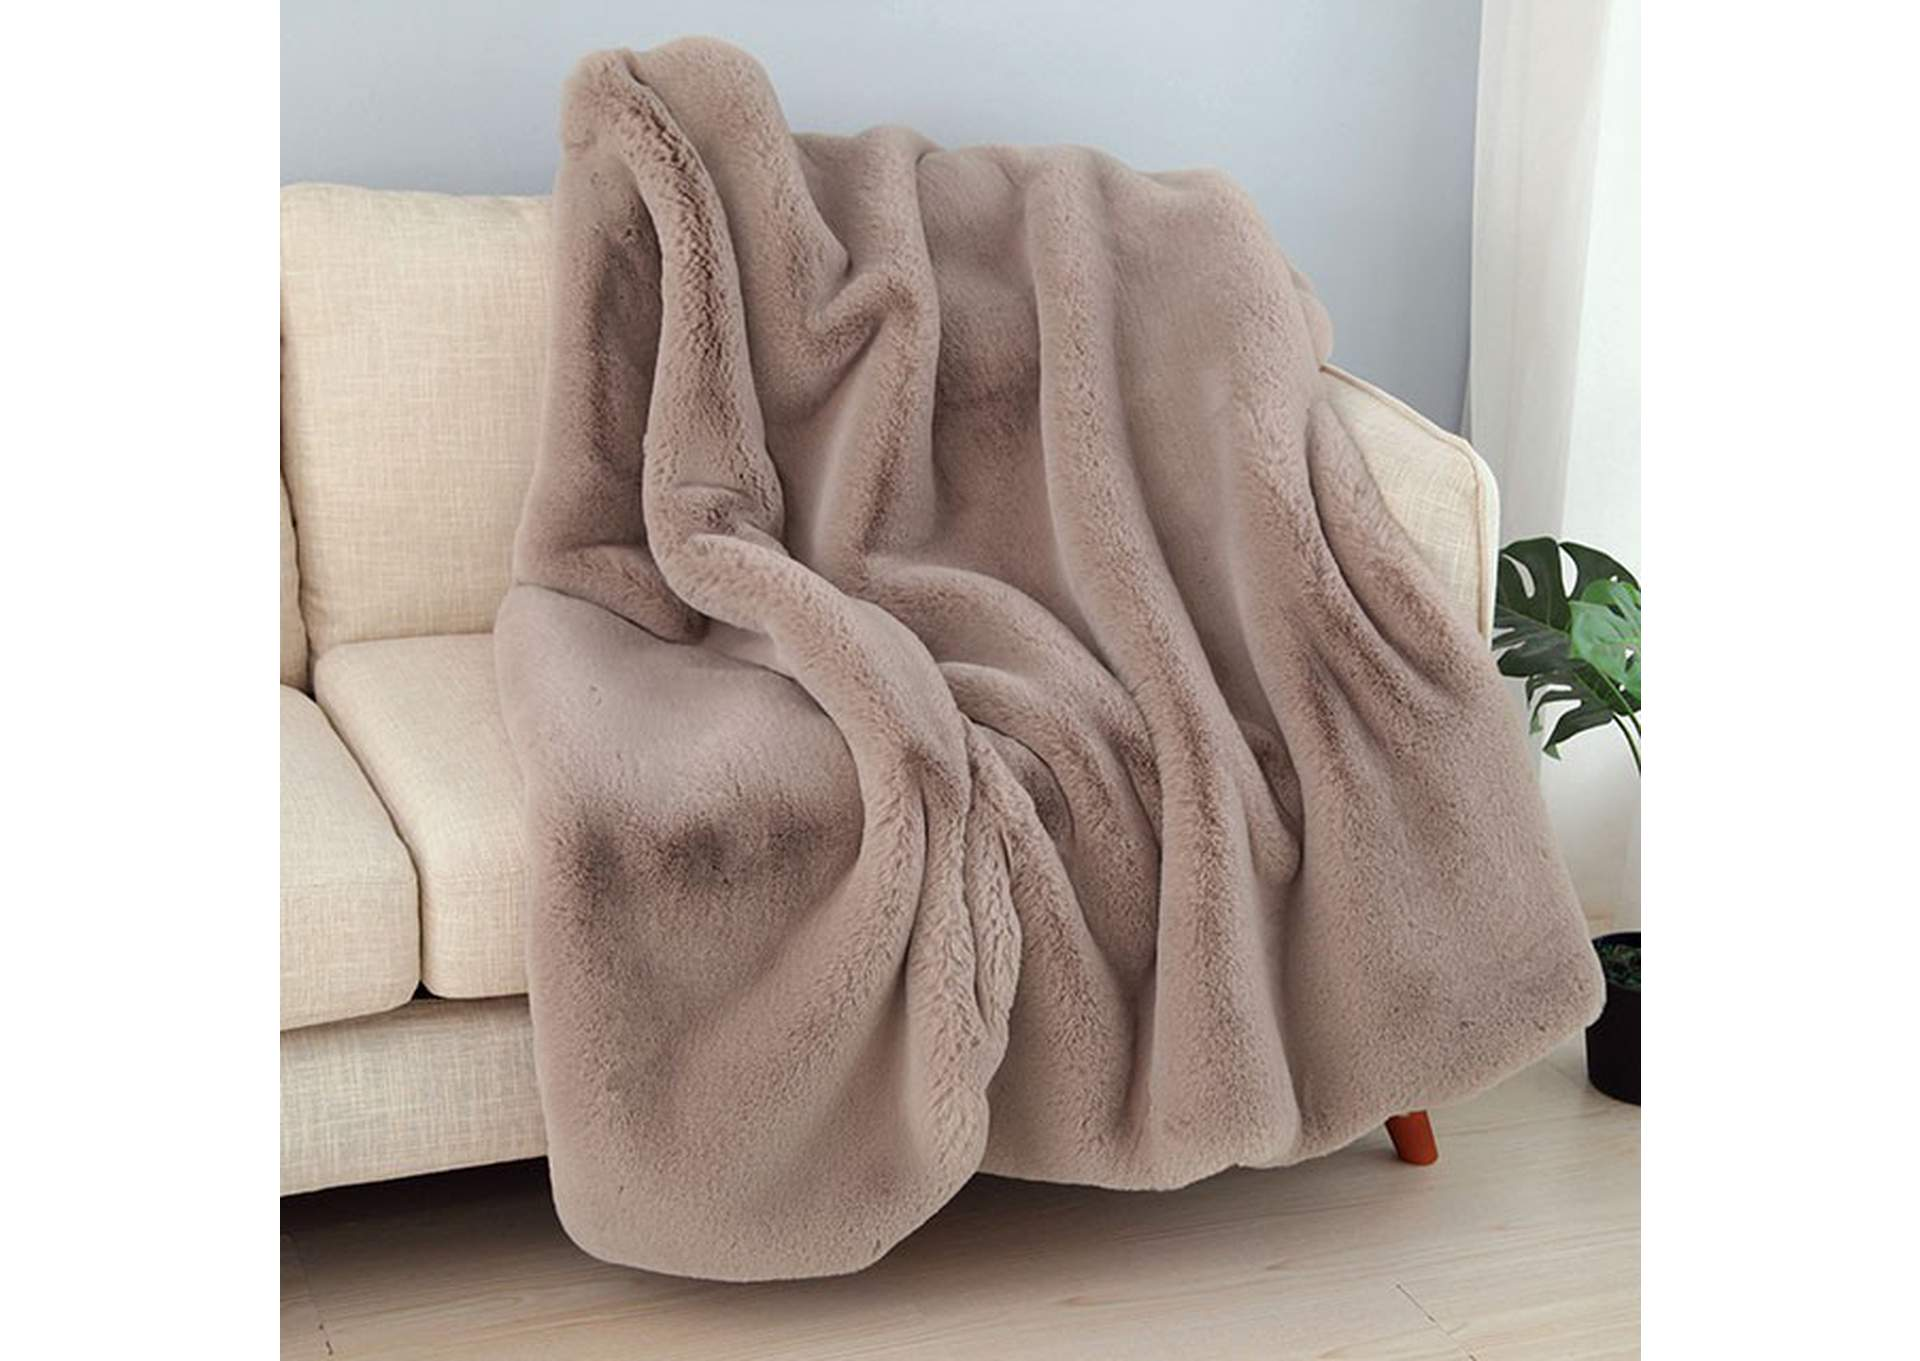 Caparica Blush Throw Blanket,Furniture of America